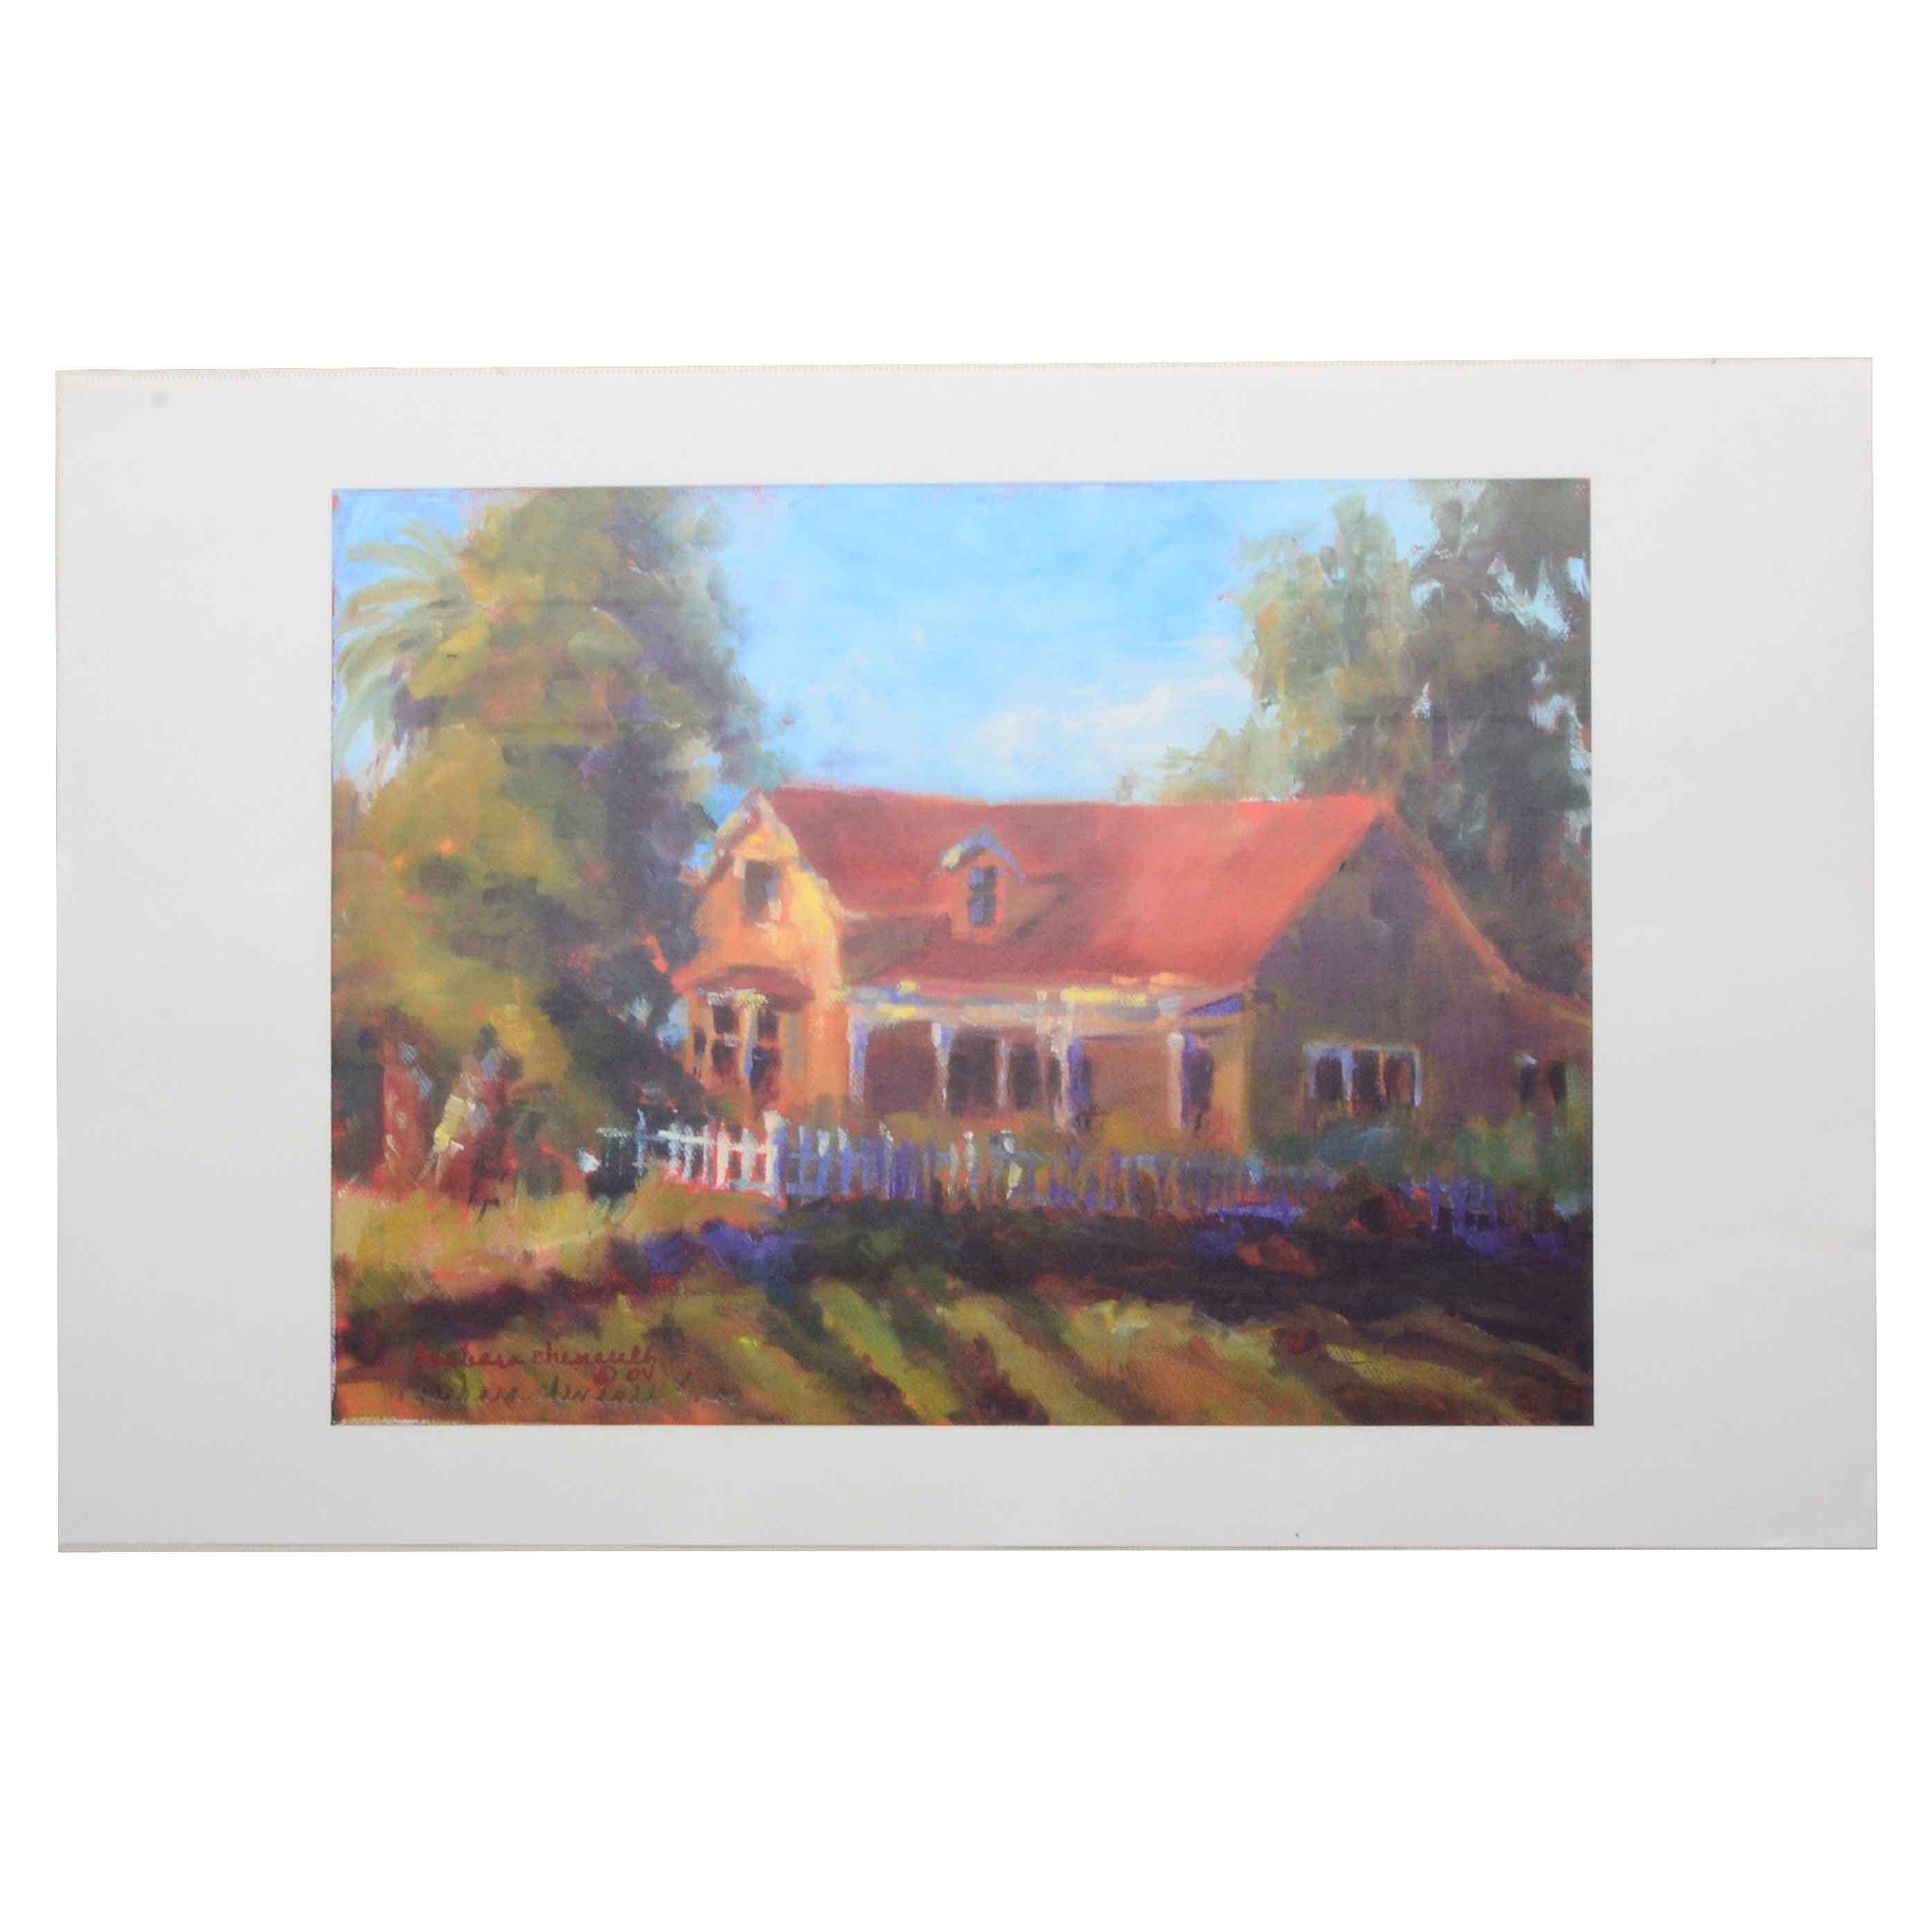 Barbara Chenault Signed Limited Edition Offset Lithograph